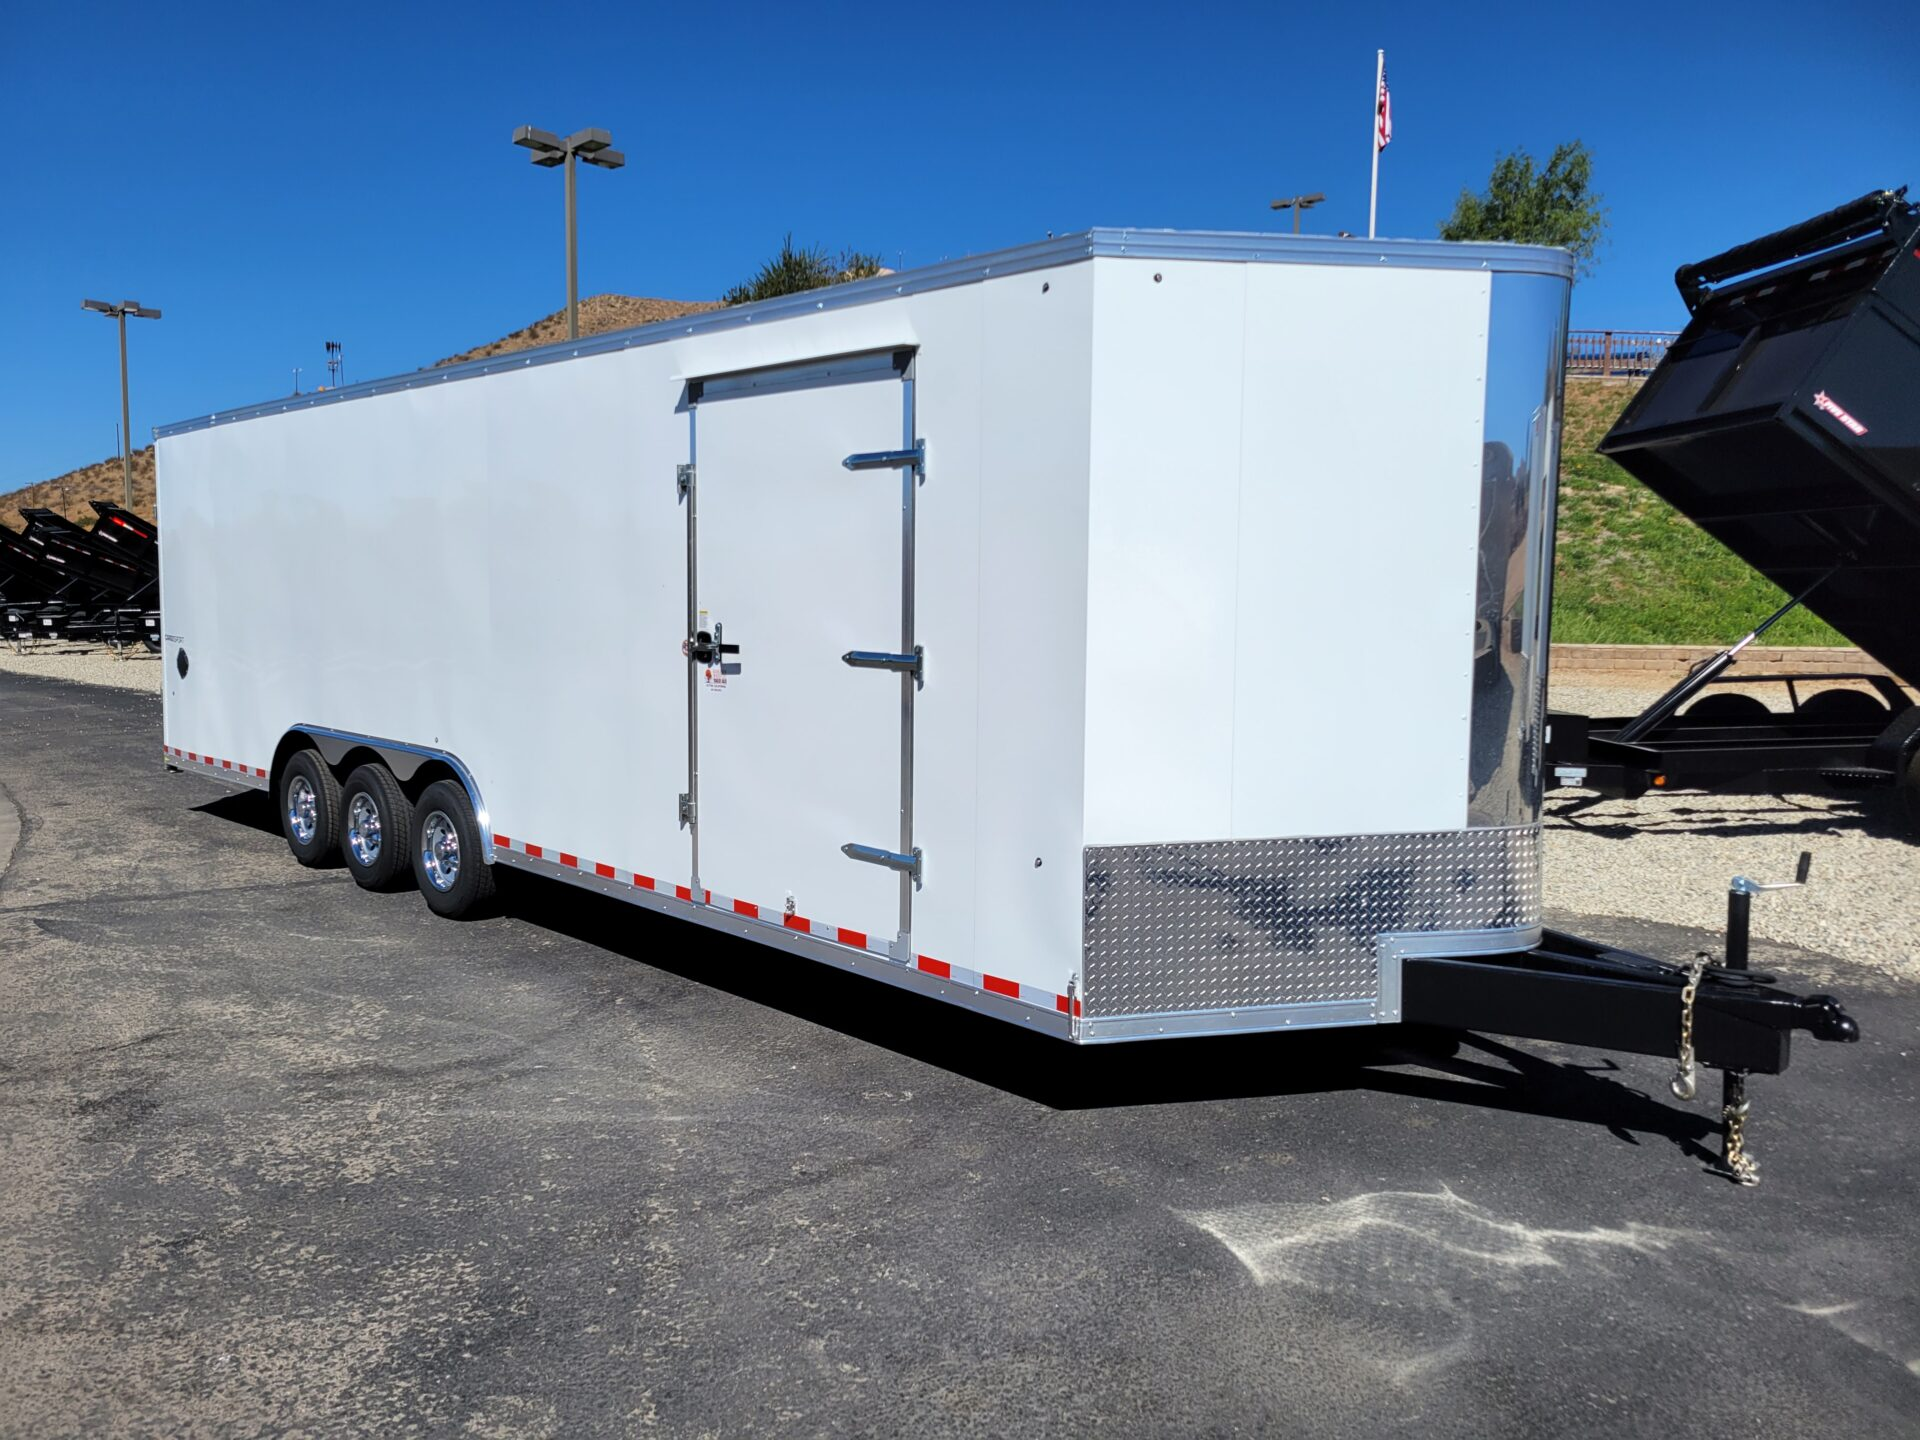 Pace Cargo Sport 8.5x28 15K - Passenger side front 3/4 view